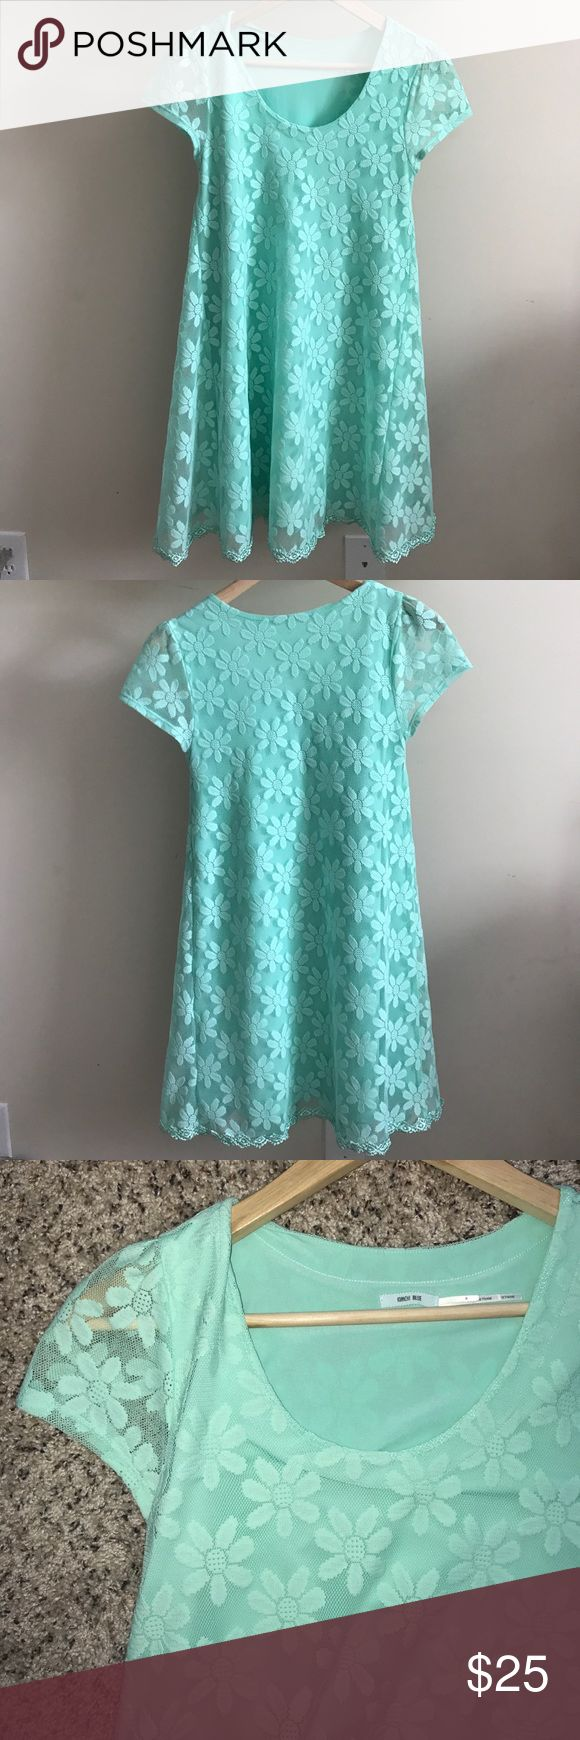 Kimichi Blue Mint Green Lace Dress UrbanOutfitters Fun Mint Green A- Line Lace Dress. Size Medium. Urban Outfitters Dresses